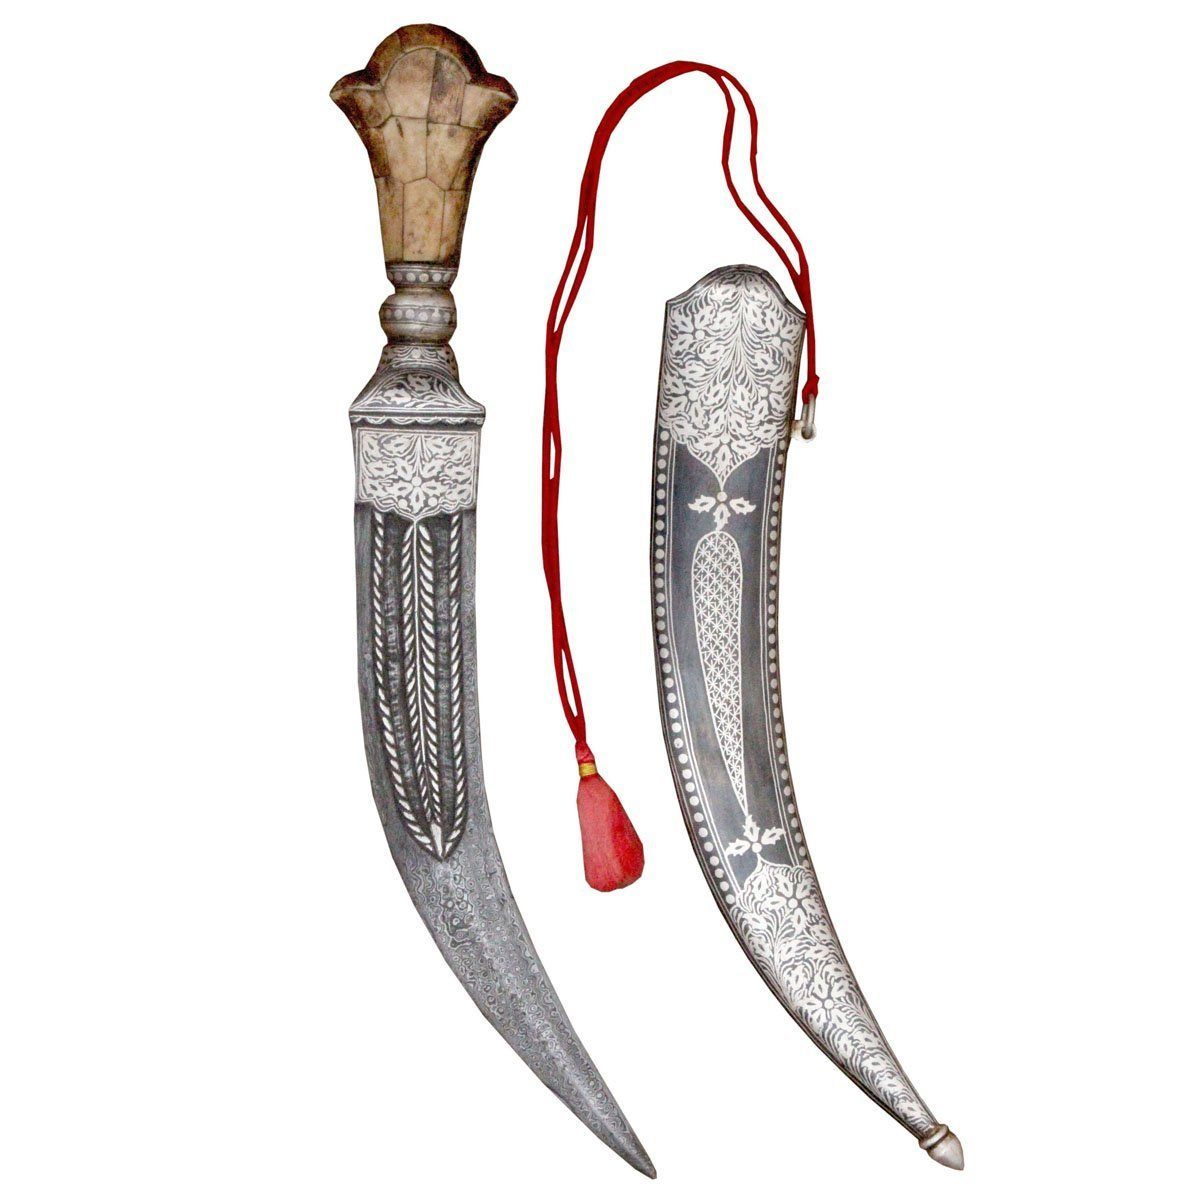 Dagger - Mughal Indo Persian Knight Vintage Sword Dagger Knife Scabbard Ancient Medieval Antique Crusader Khanjar Collectibles - 12 Inches